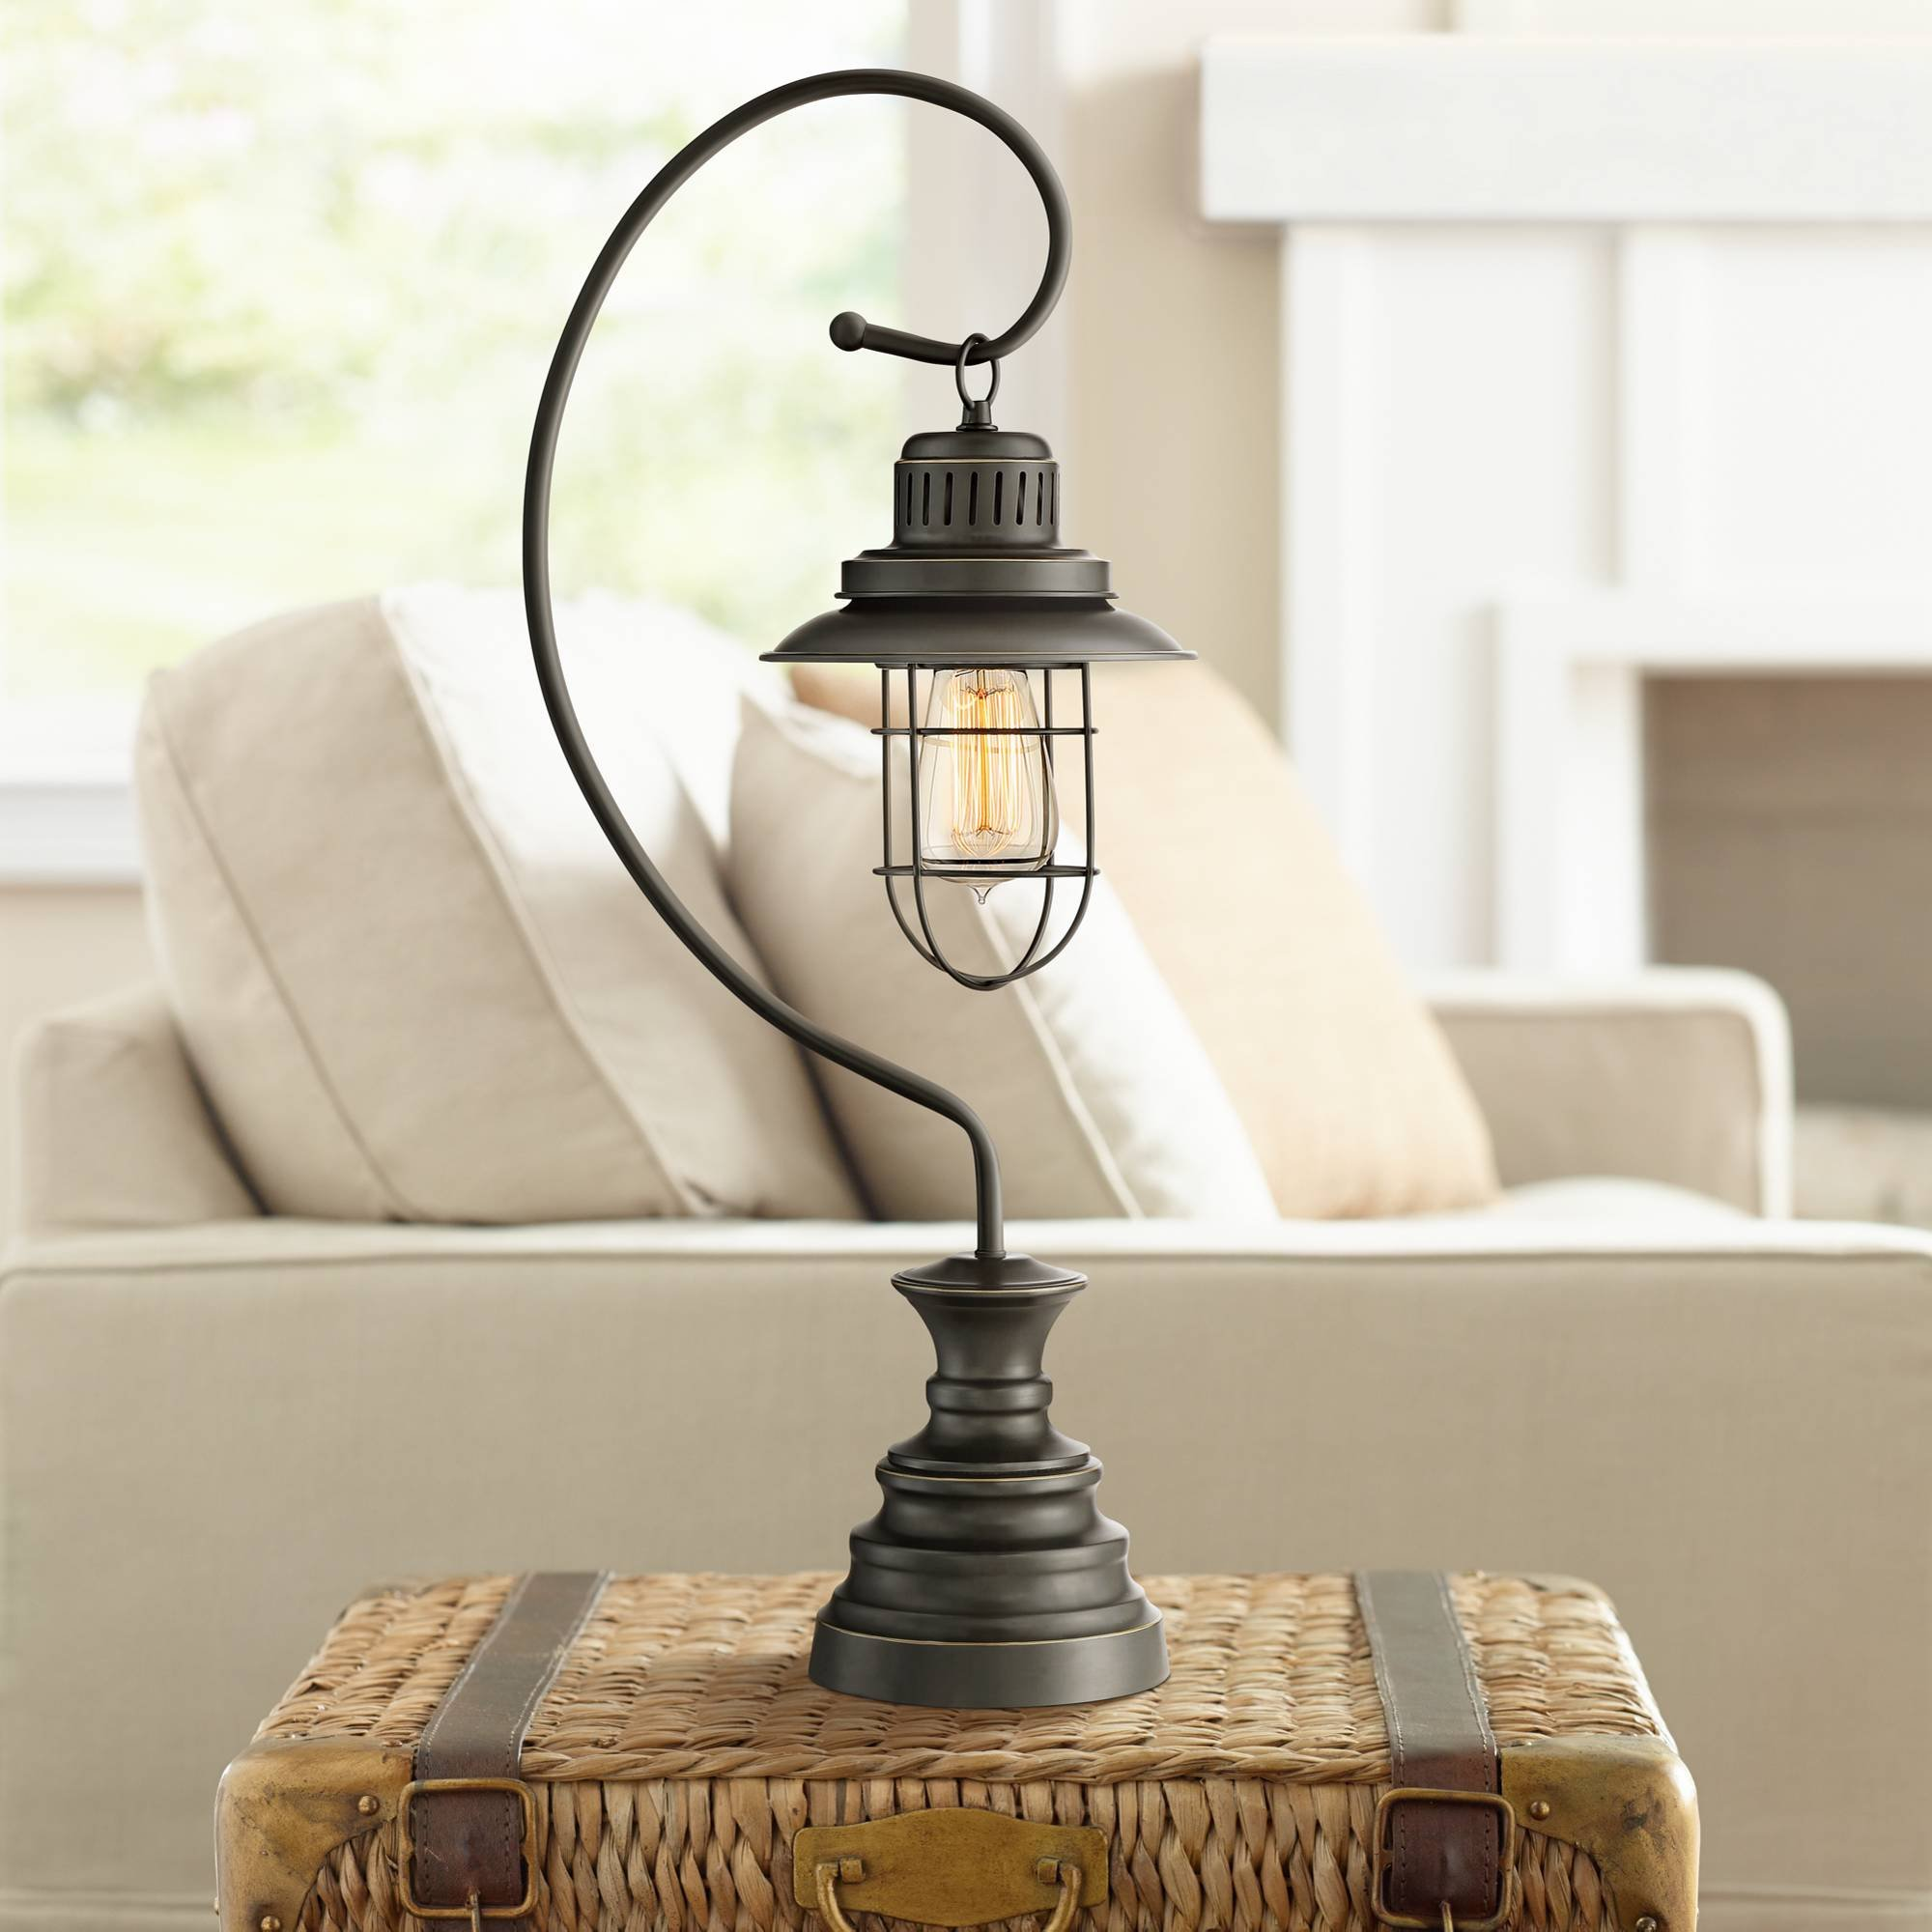 Ulysses Industrial Desk Table Lamp Dark Oil Rubbed Bronze Metal Wire Cage Shade Lantern for Living Room Bedroom Office - Franklin Iron Works by Franklin Iron Works